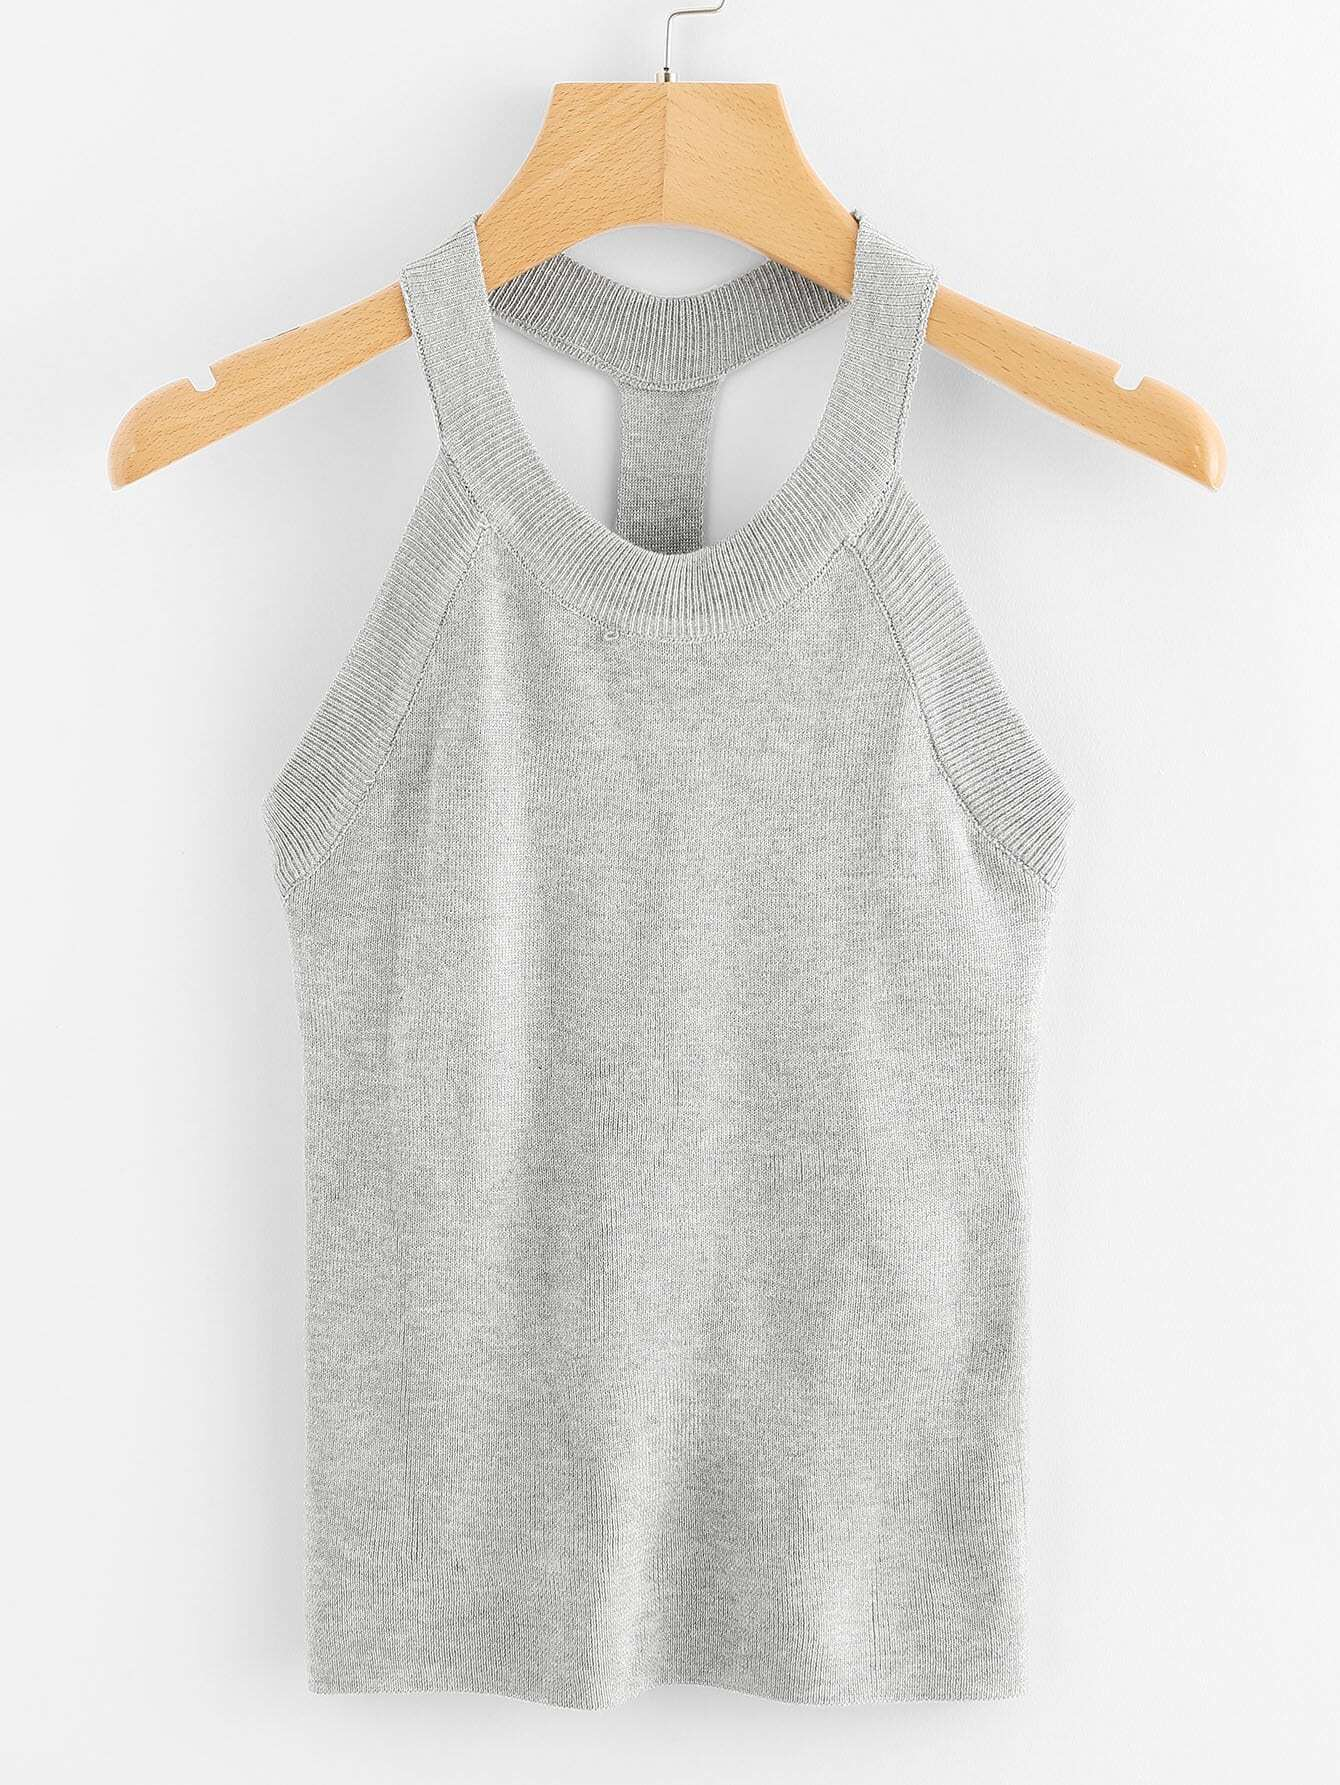 Ribbed Trim Knit Tank Top